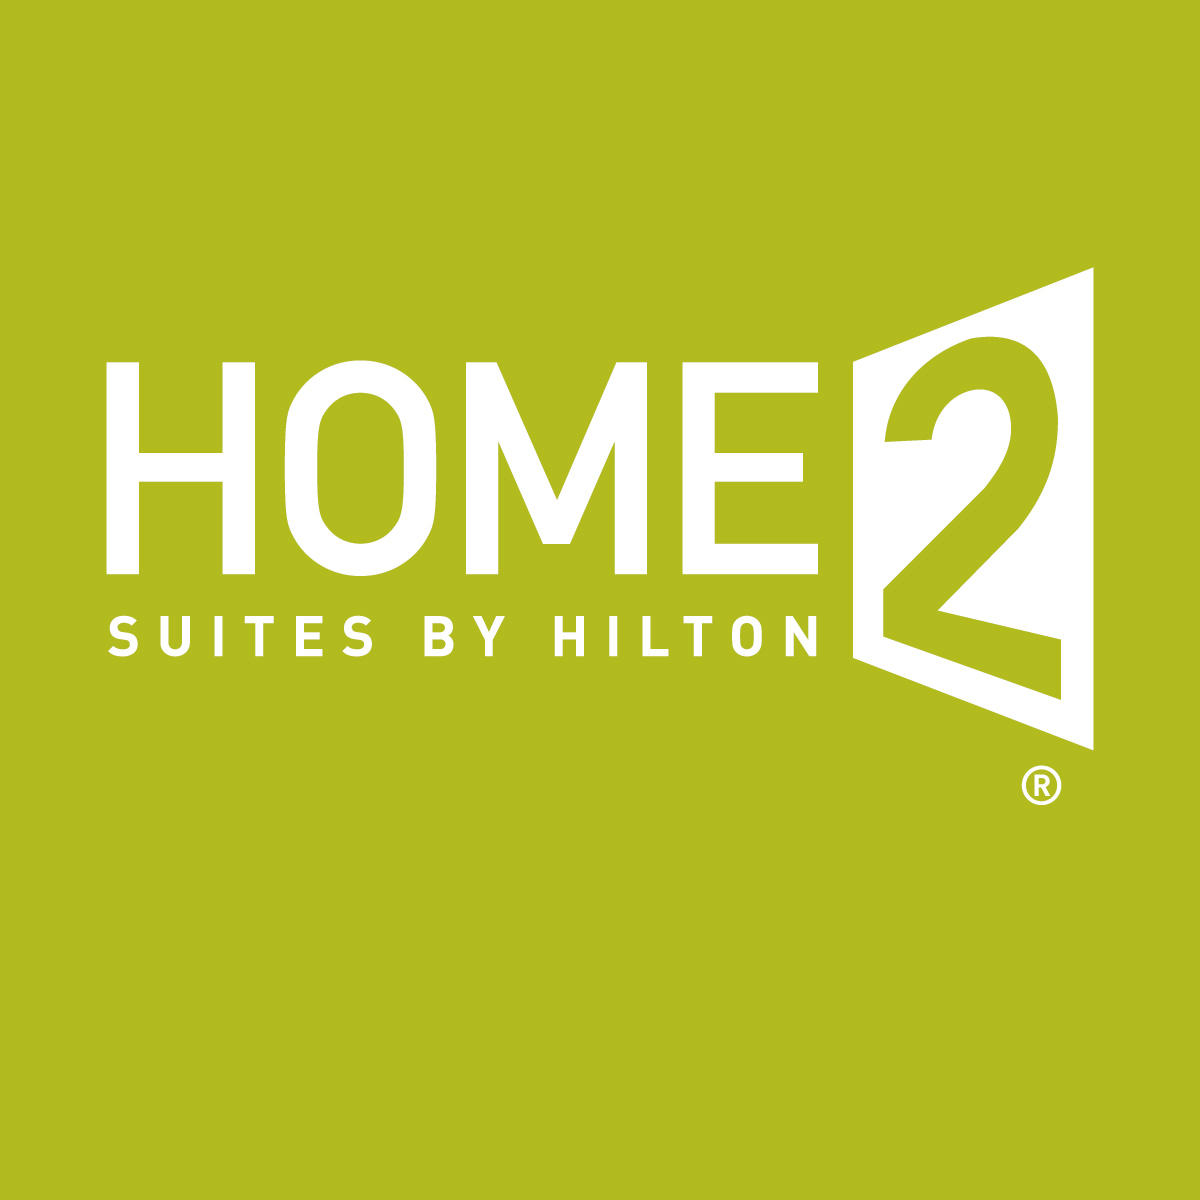 Home2 Suites by Hilton San Antonio Airport, TX